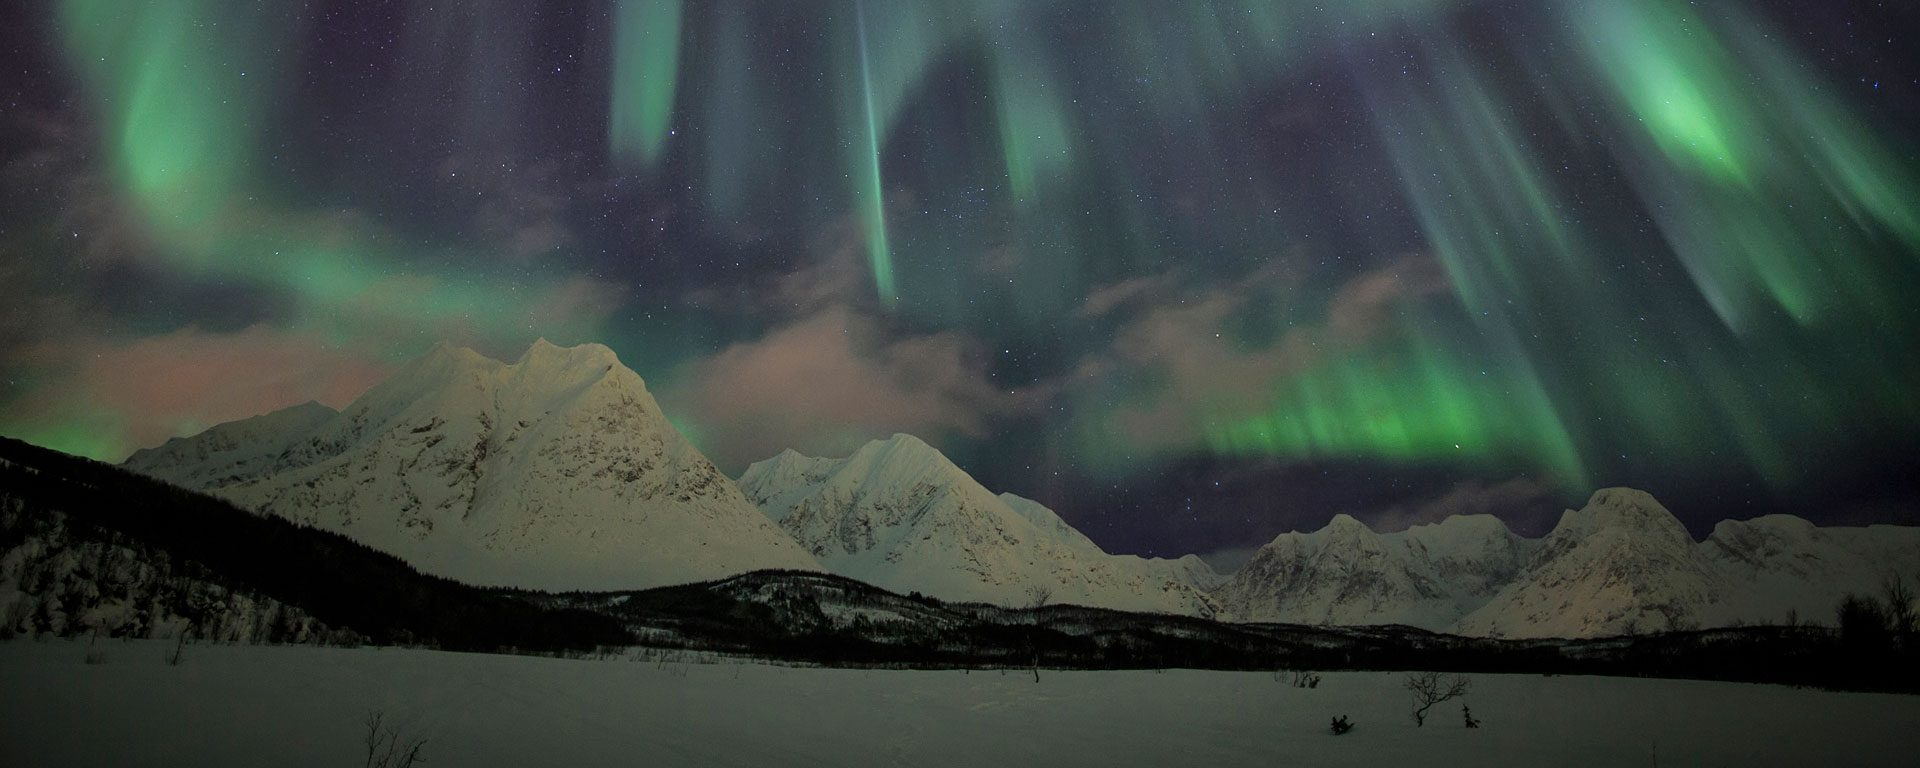 The Northern Lights illuminate the snowy landscape in Svensby Lyngen Alps, Tromsa, Norway